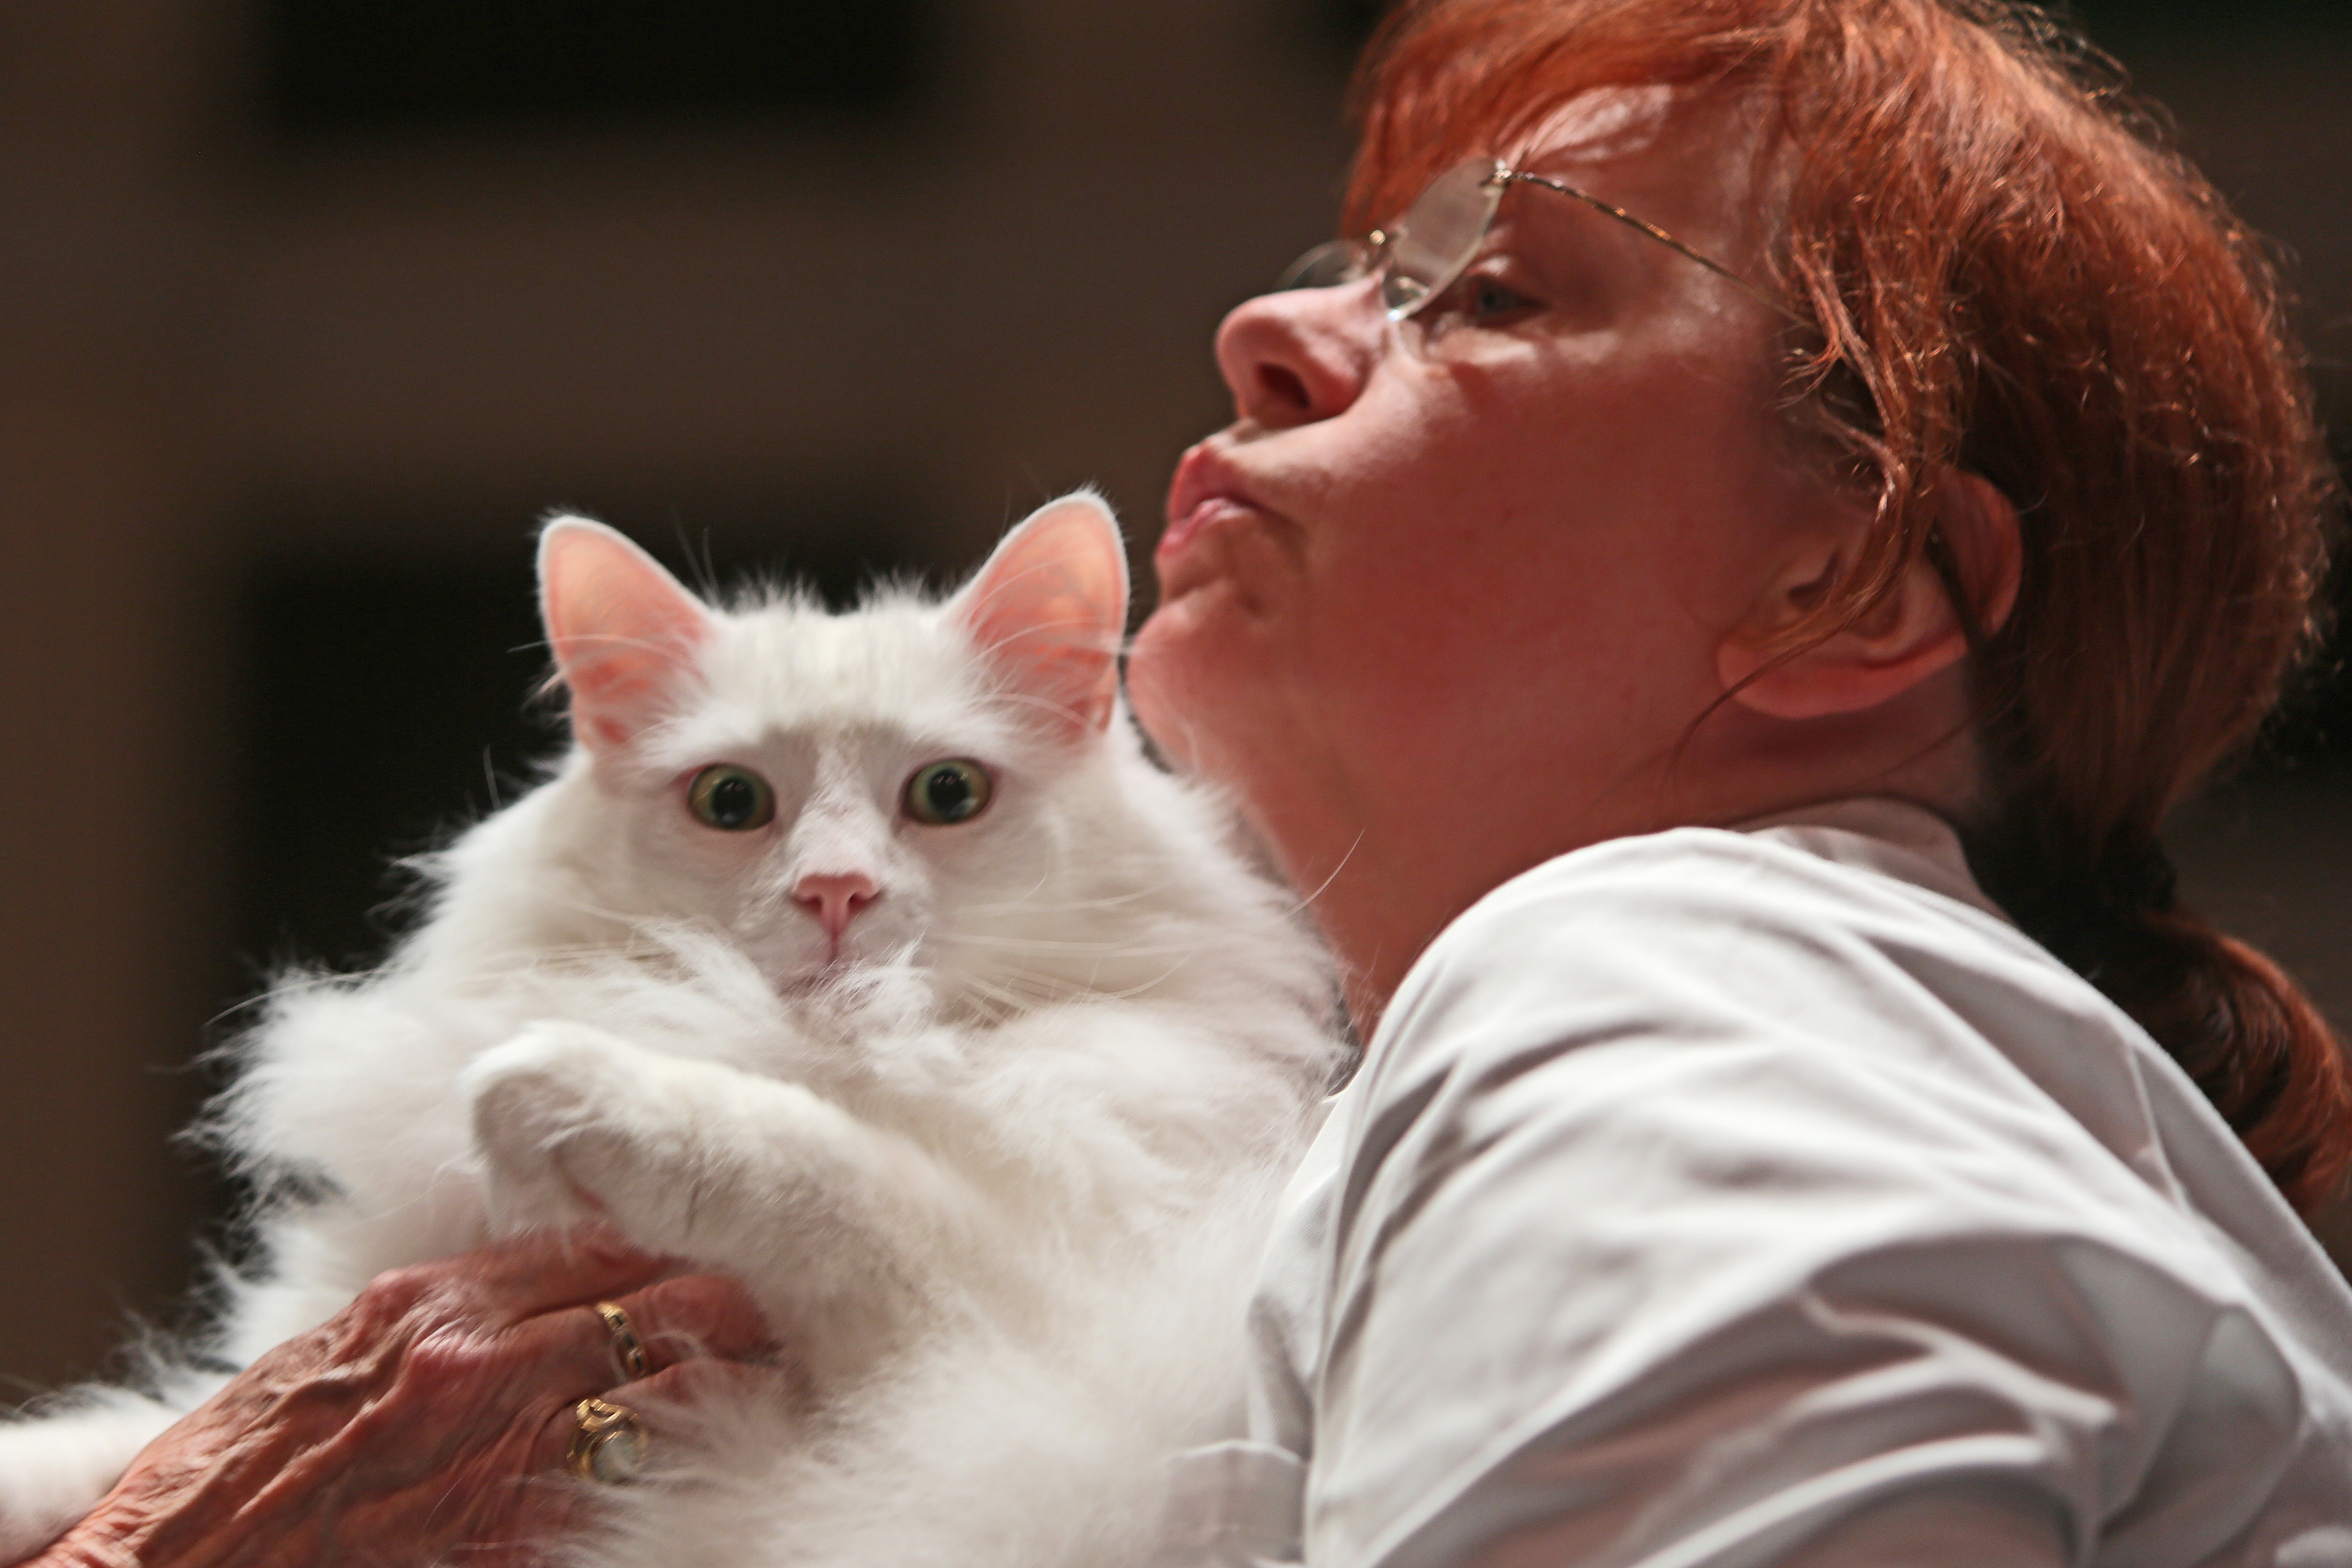 The Nor' East Scotland Championship Cat shows was held in Caird Hall, Dundee.